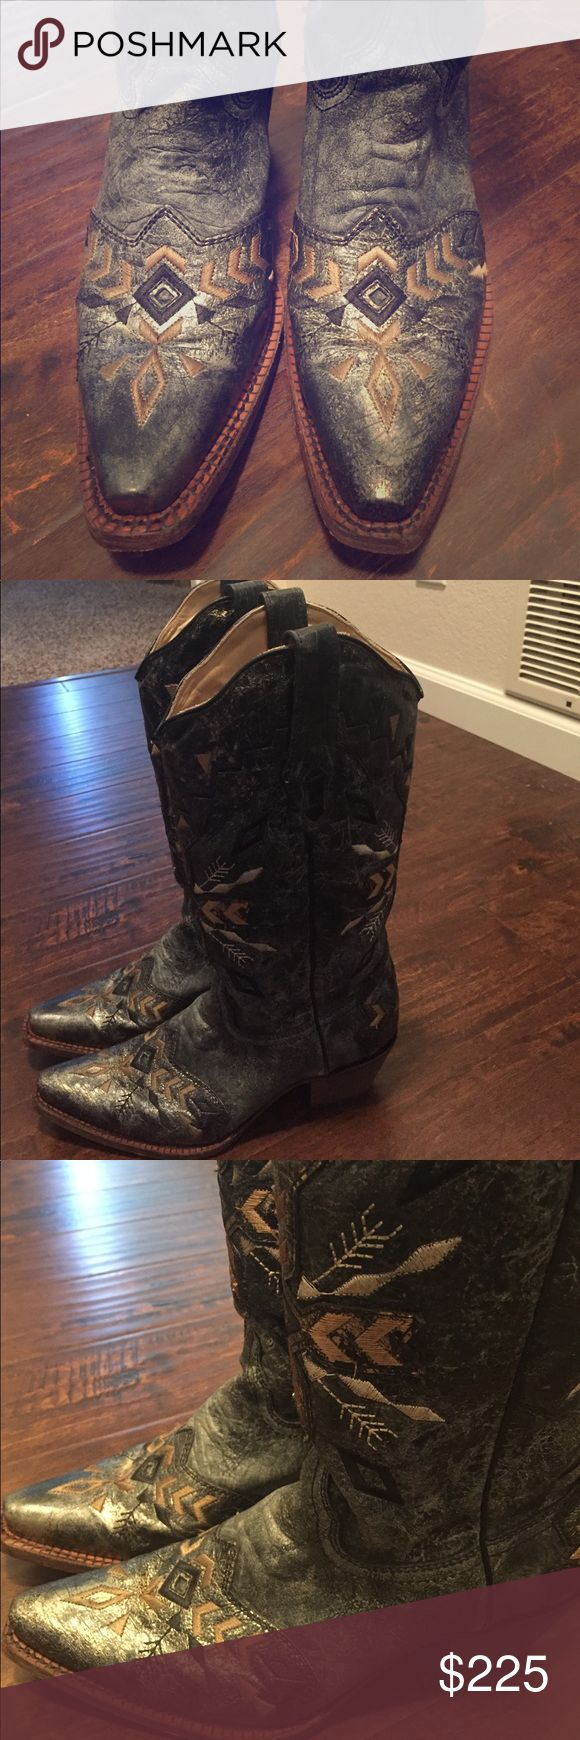 🆕 Pair of Corral Vintage Boots Never worn, tags still attached and purchased in Austin. Aztec pattern with metallic gold throughout boots. Boot itself is a dark gray with some black stitching. Corral Shoes Heeled Boots